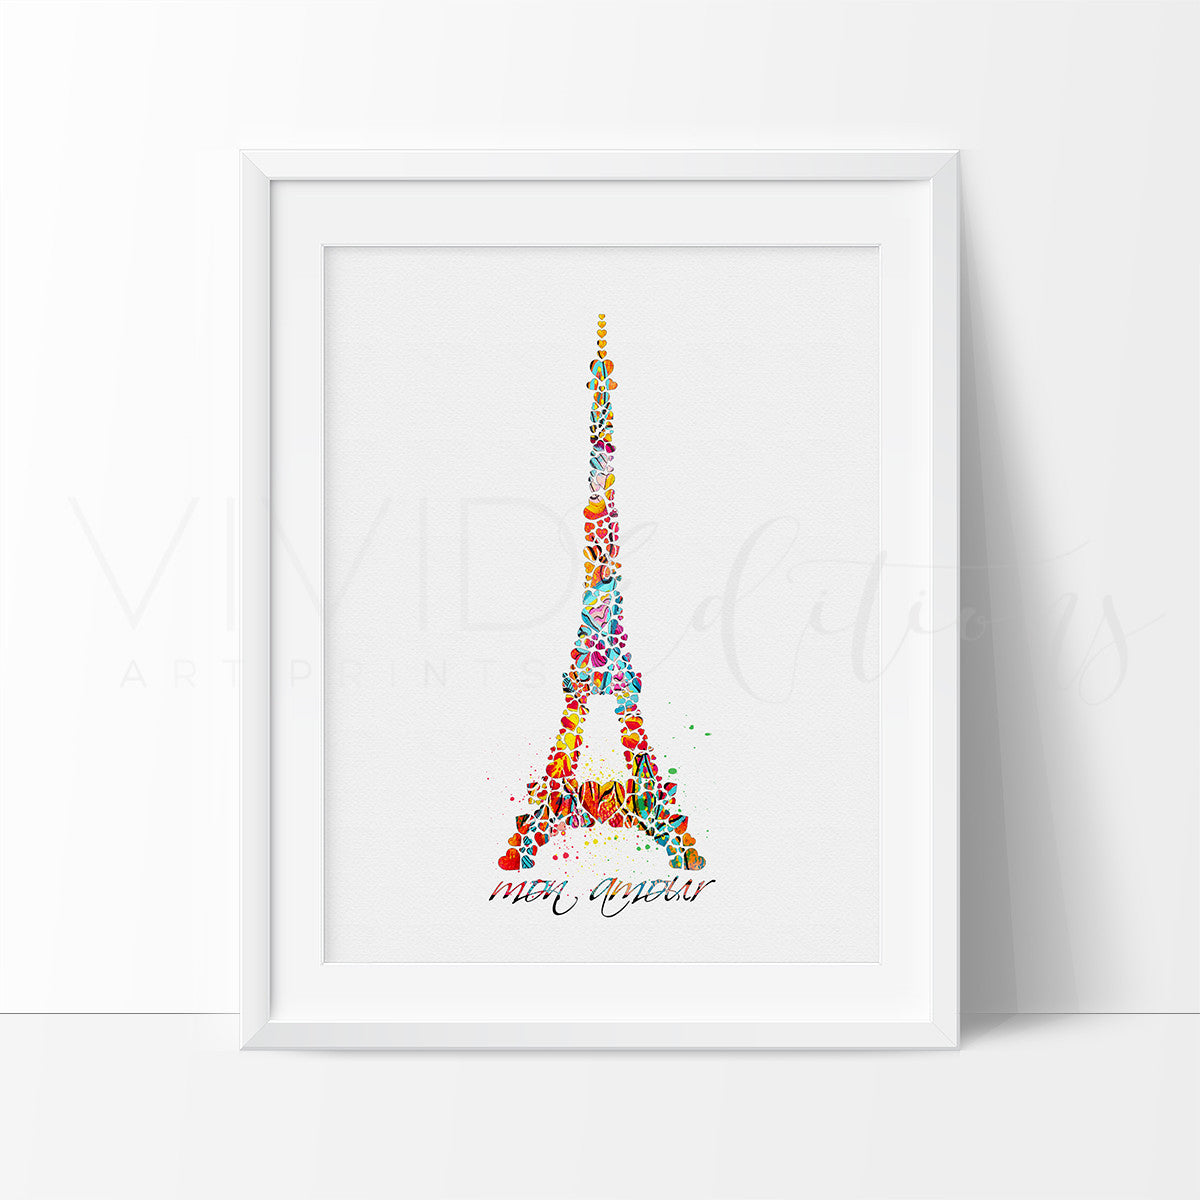 eiffel tower paris france watercolor art print wall decor